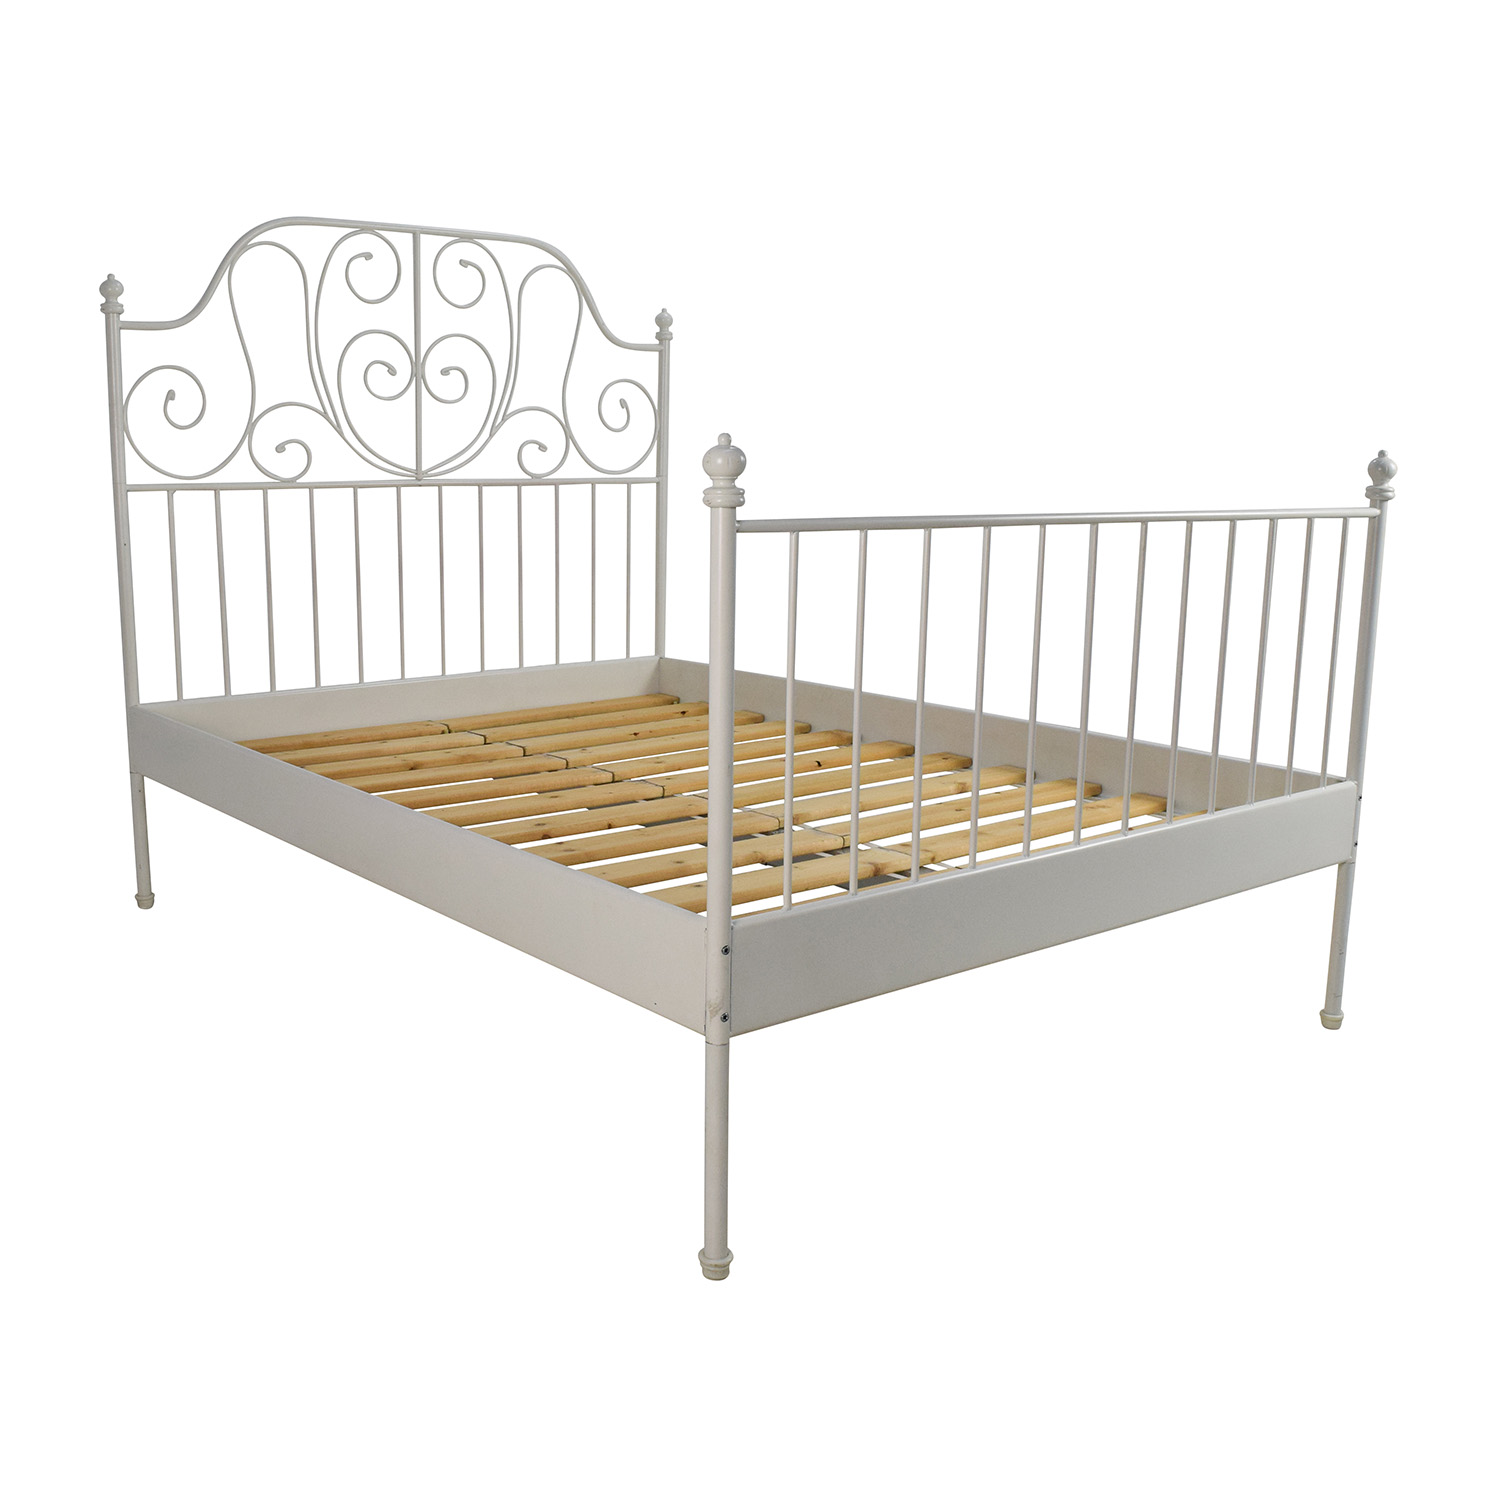 Ikea leirvik bed frame review ikea bedroom product reviews for Most popular bed frames